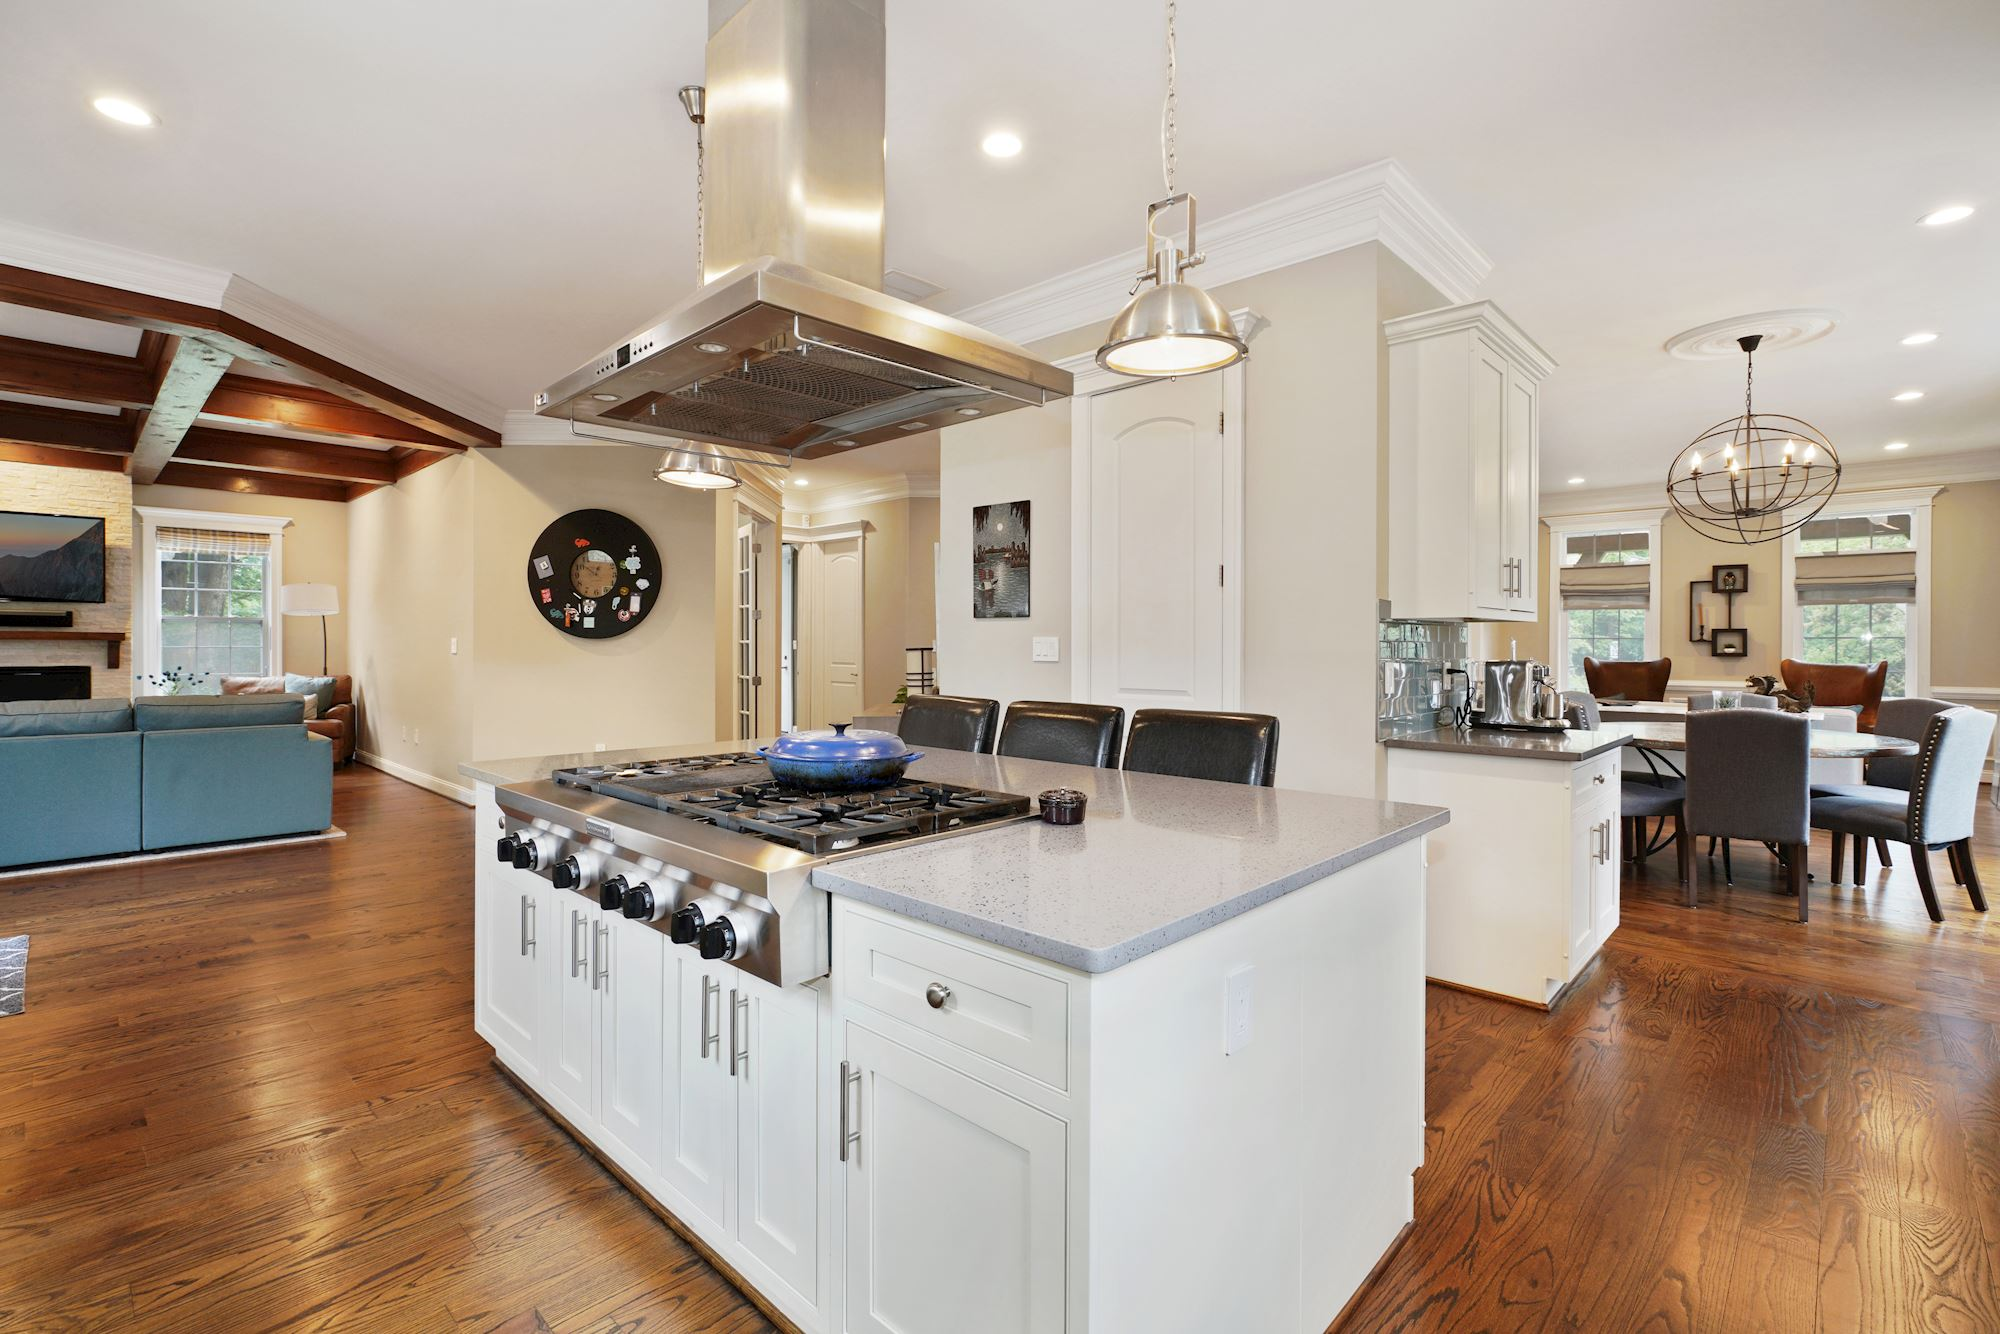 1613 Wrightson Drive,McLean,Virginia 22101,5 Bedrooms Bedrooms,5 BathroomsBathrooms,Single Family Home,Wrightson Drive,1068